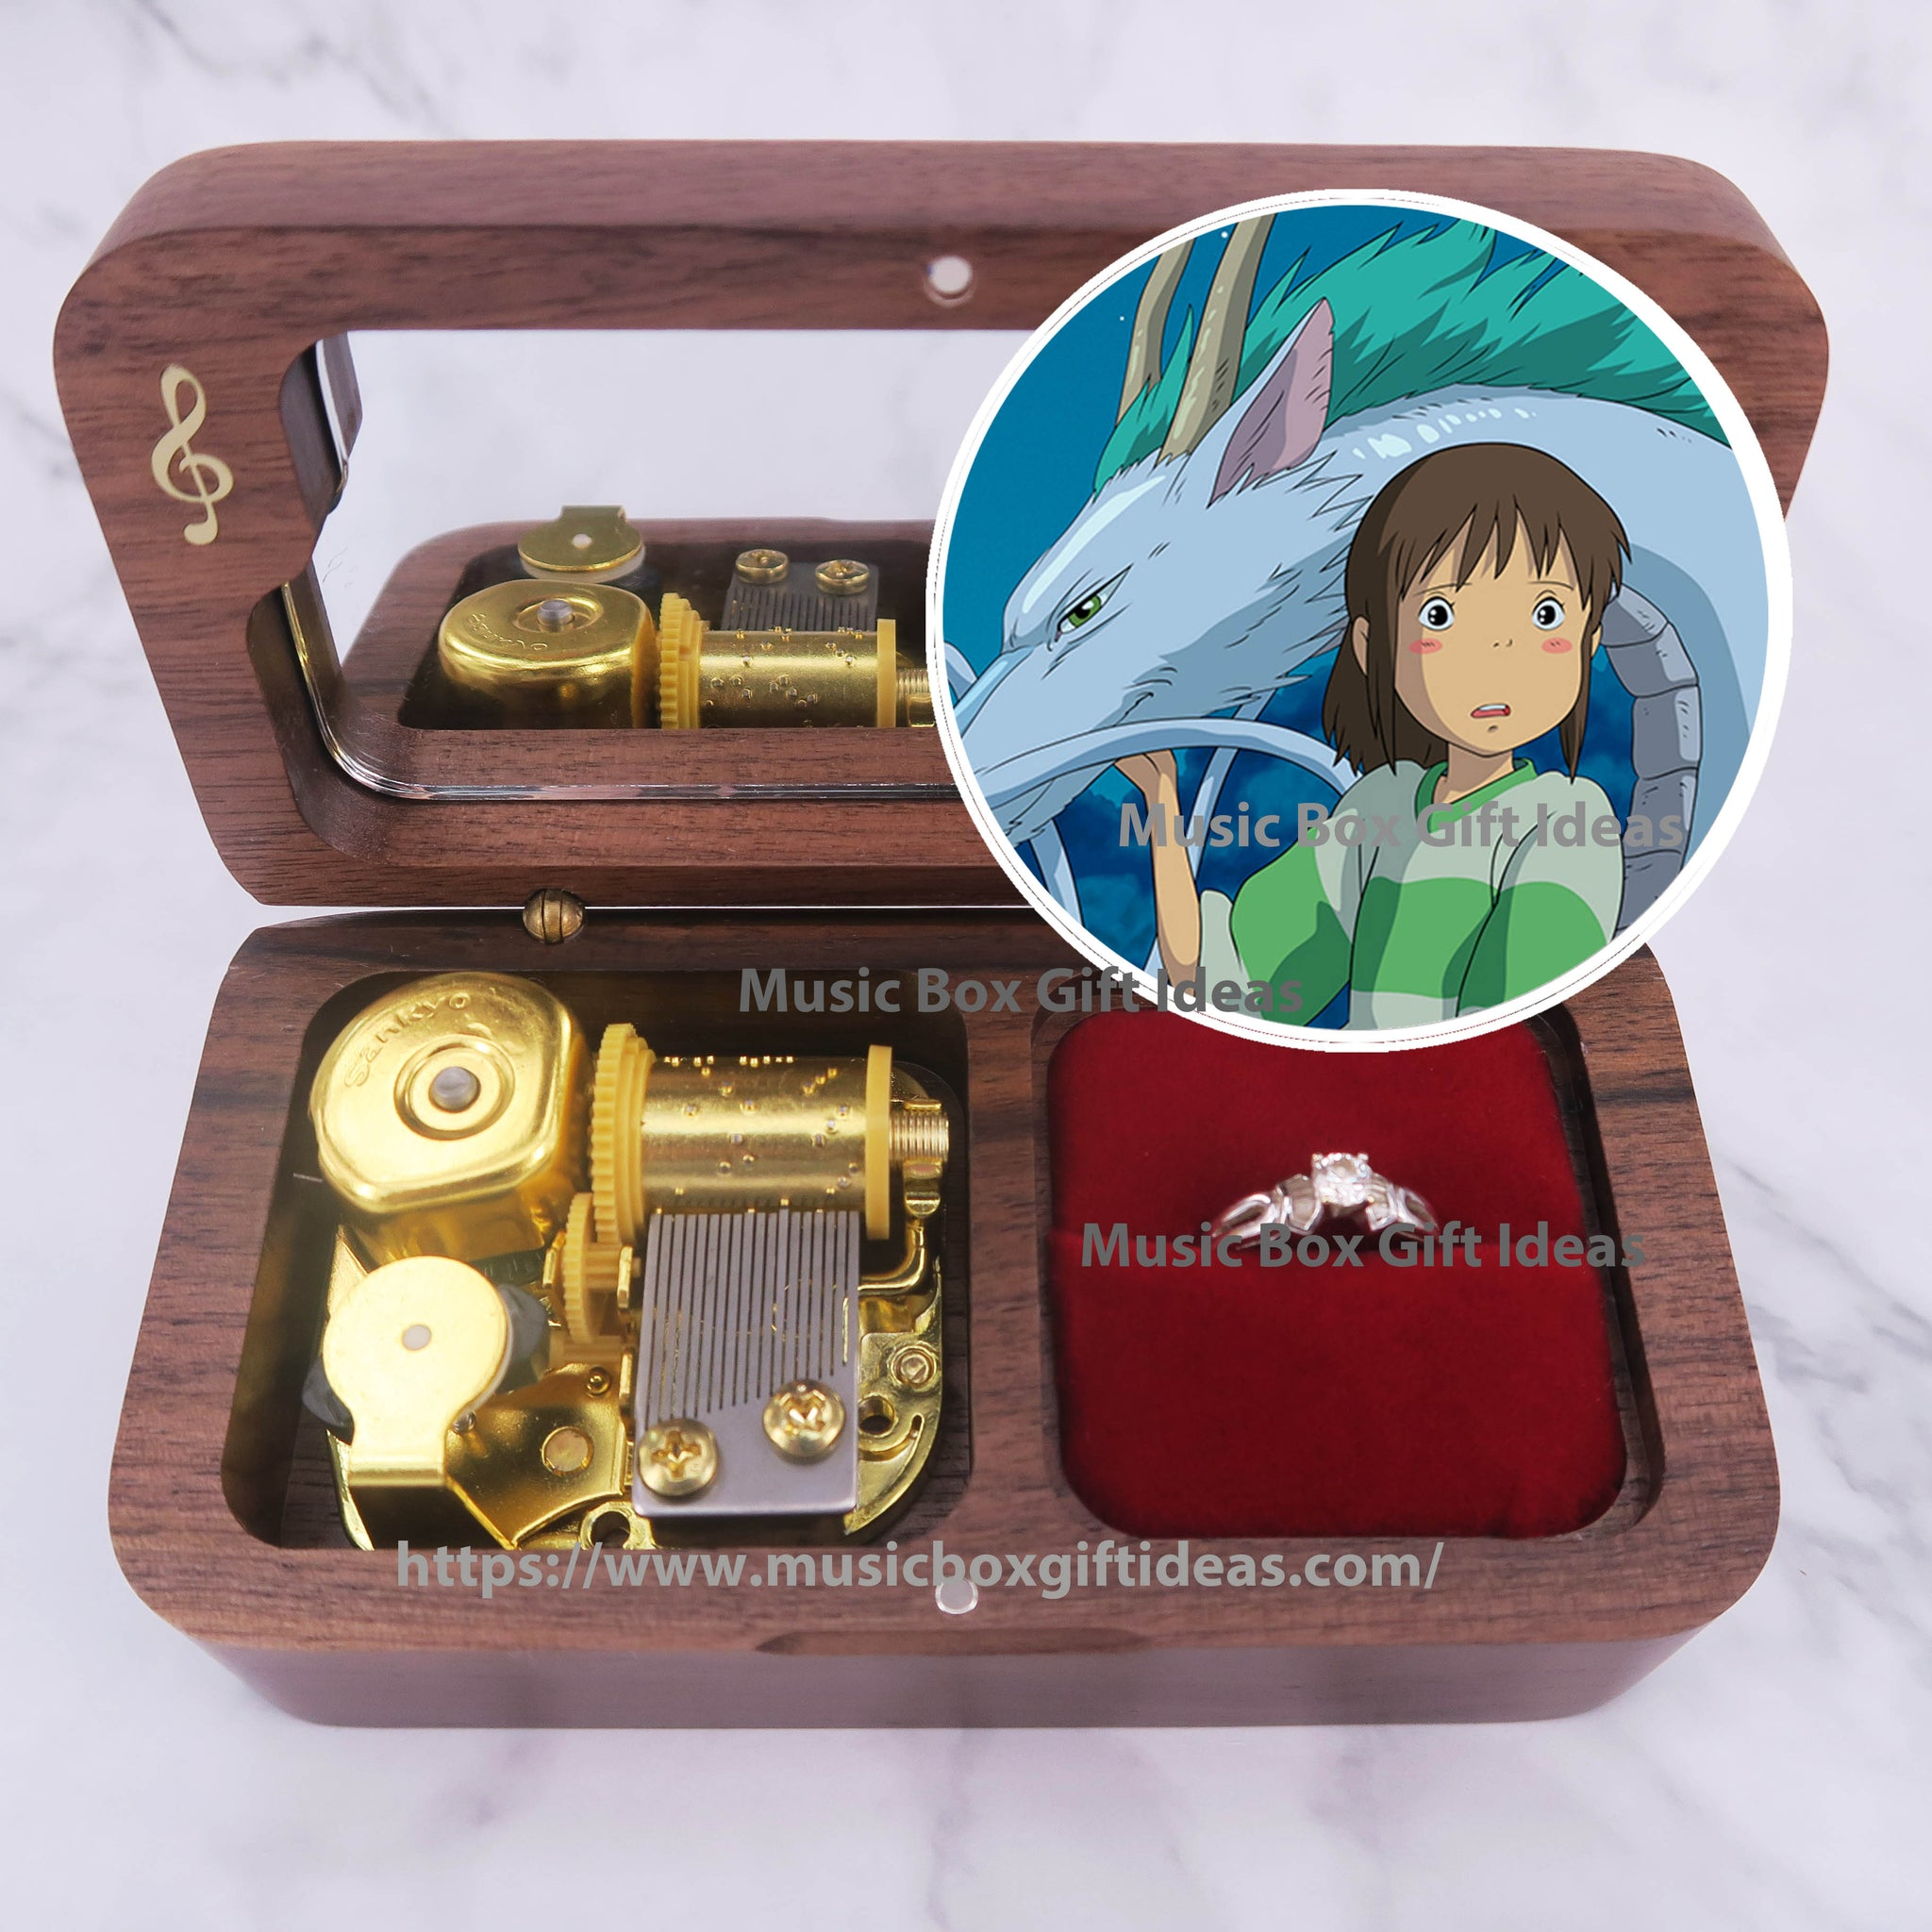 Spirited Away One Summer's Day from Studio Ghibli 18-Note Jewelry Music Box Gift (Wooden Clockwork) - Music Box Gift Ideas